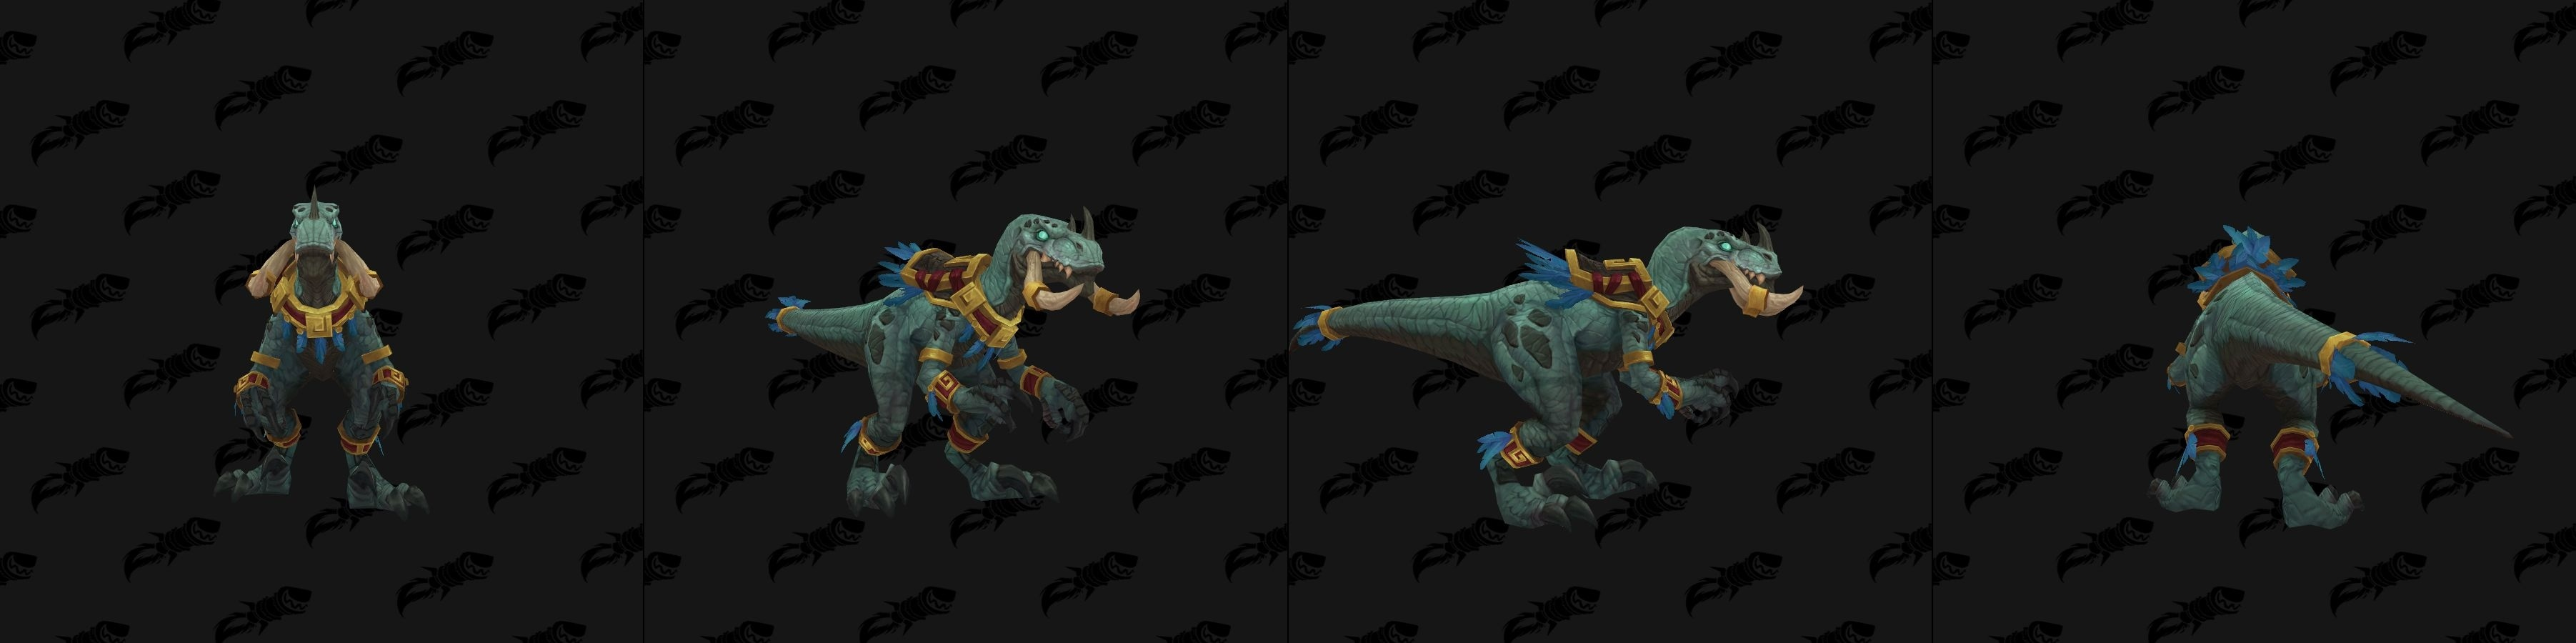 Zandalari Troll Male and Female Allied Race Customization Options